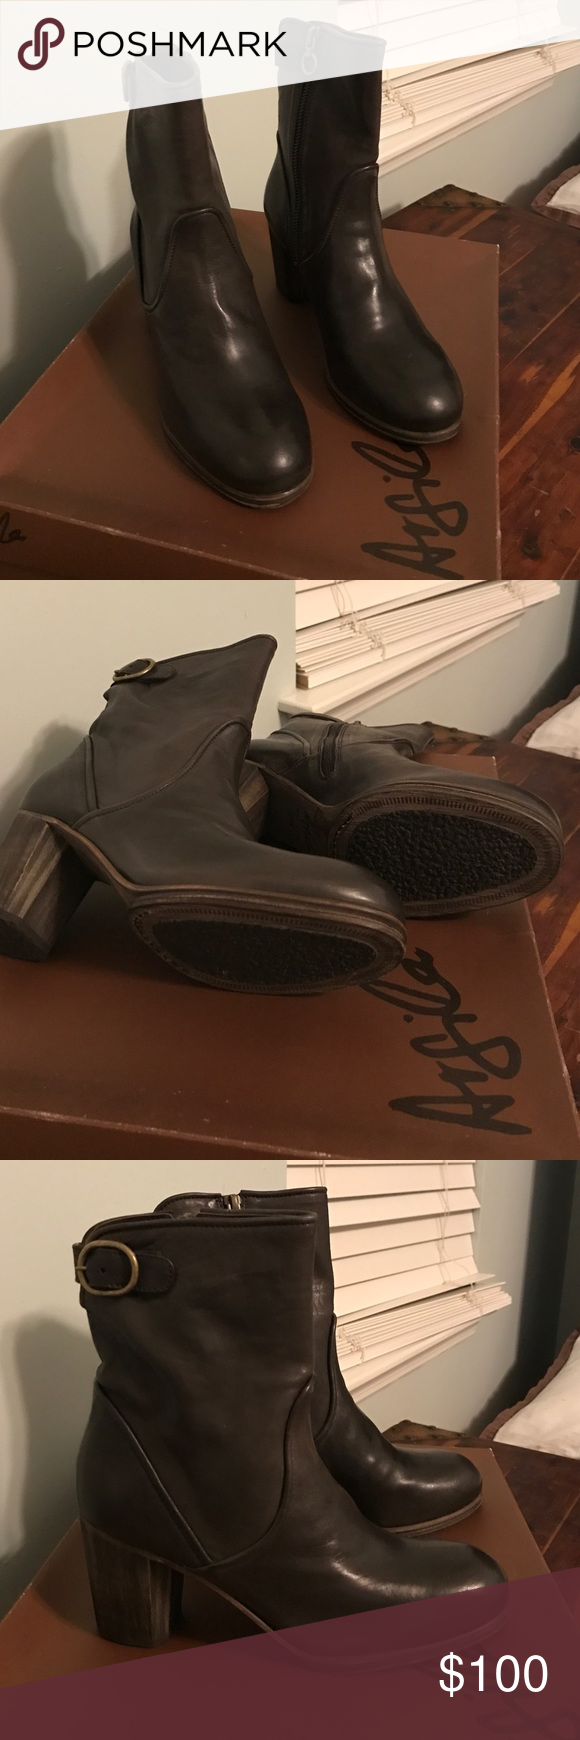 Argila brown leather boots Gorgeous brown leather.  Made in Spain.  Brand Argila.  Size 37.5- US 7.5 equivalent.  Never worn- new condition. Original box. All leather including soles with rubber foot and toe pads in sole. Shoes Ankle Boots & Booties